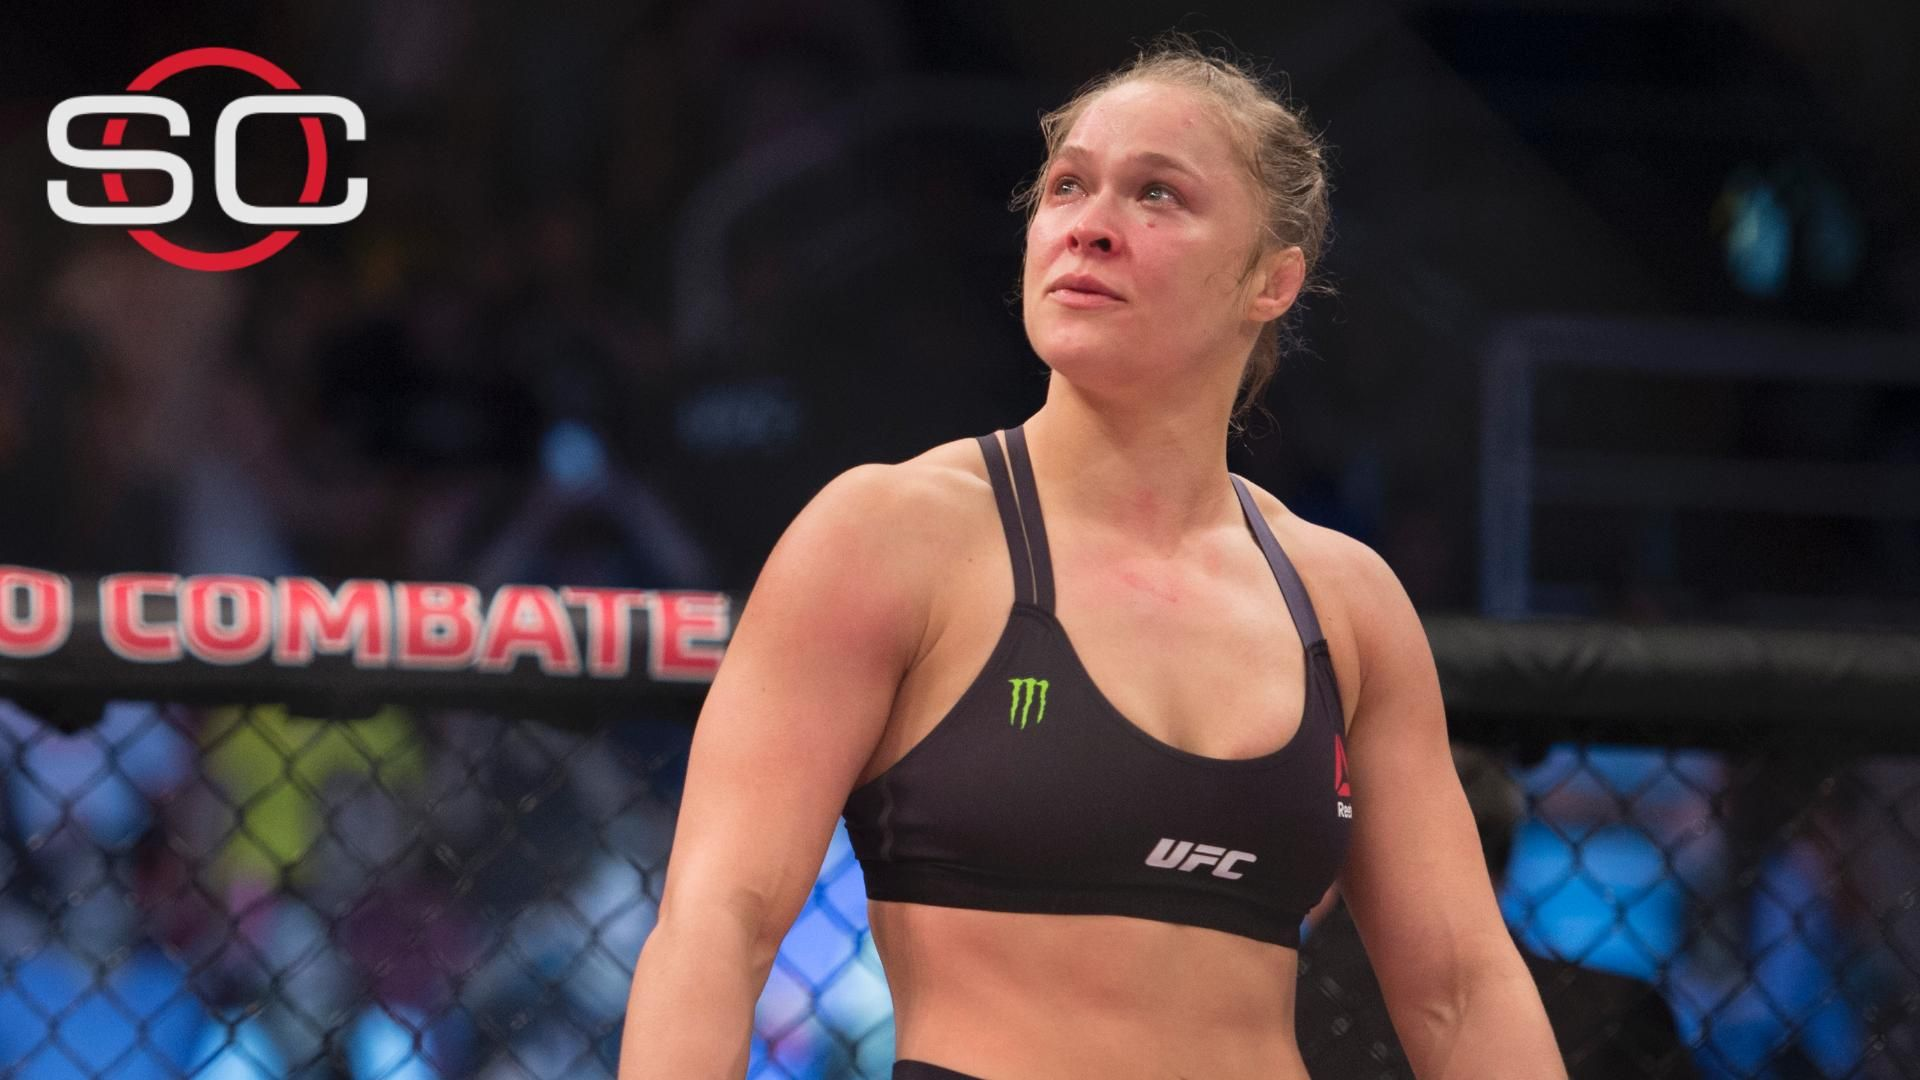 Will Rousey's November return come to fruition?